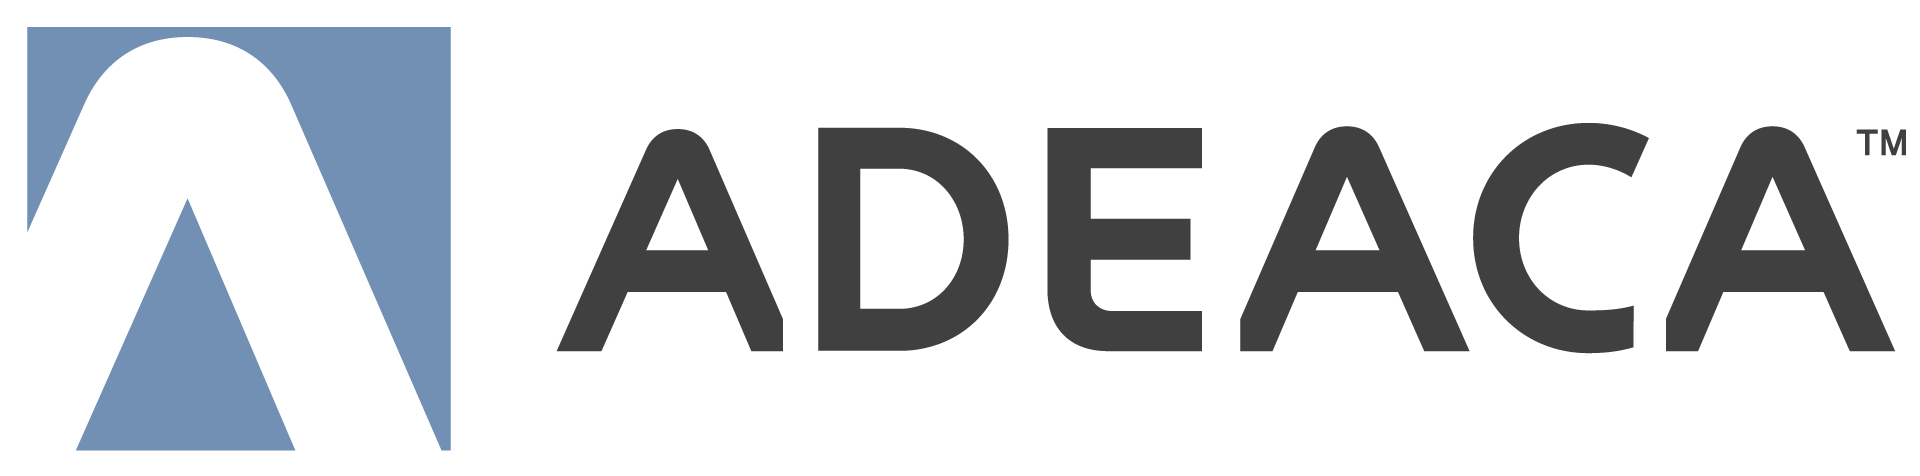 Adeaca Project Business Automation Optimizes Output and Efficiency